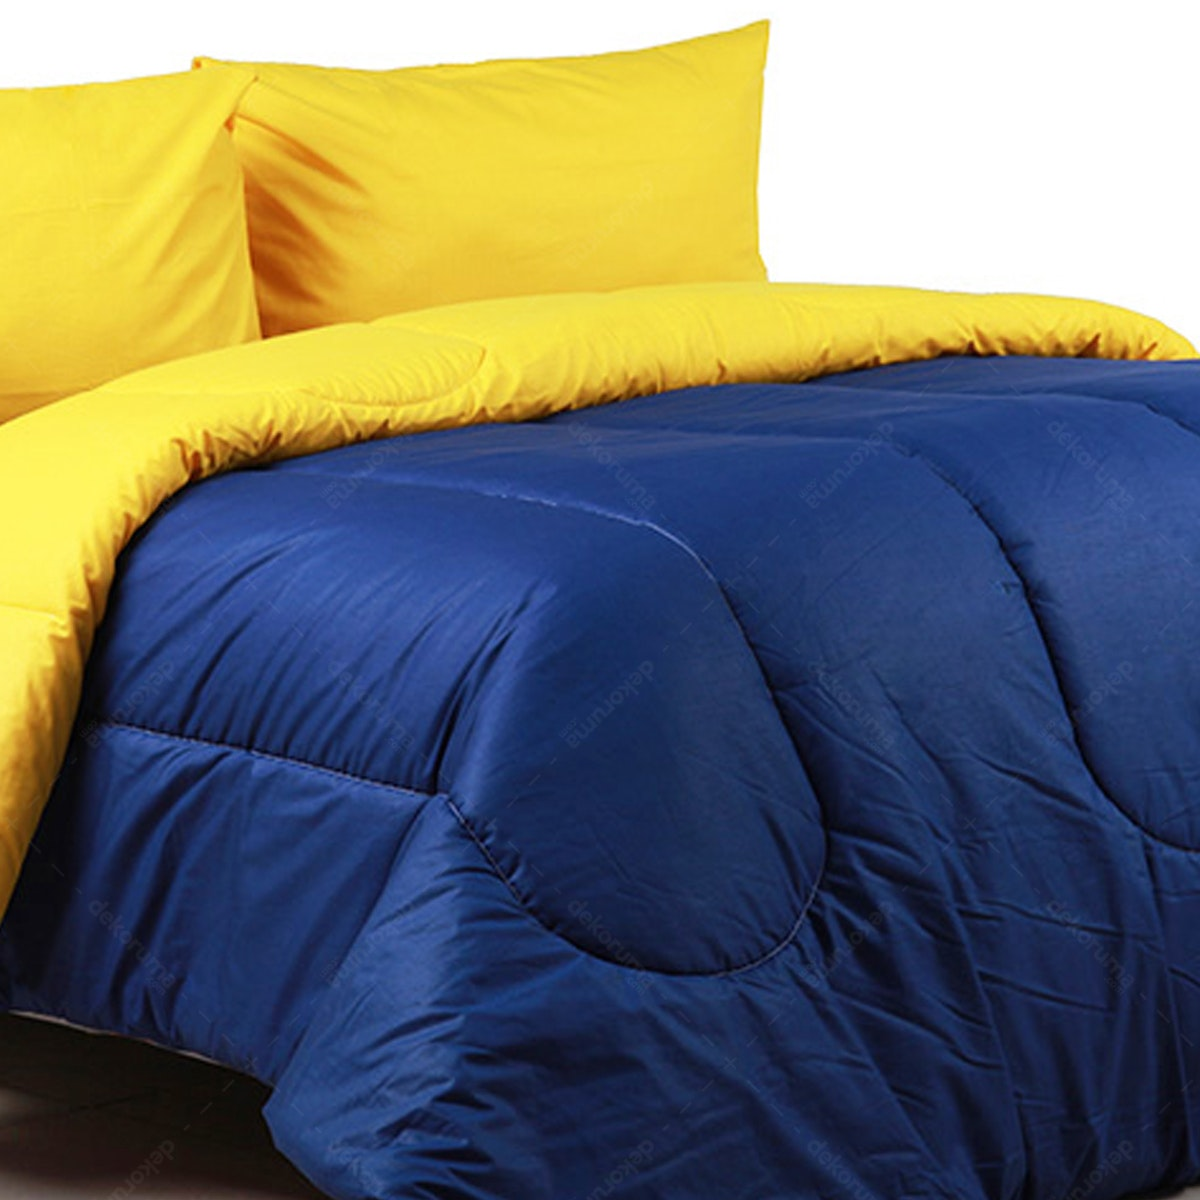 Sierra Bed Cover Dan Sprei Polos Alaska Mix Egg Yolk 160x200